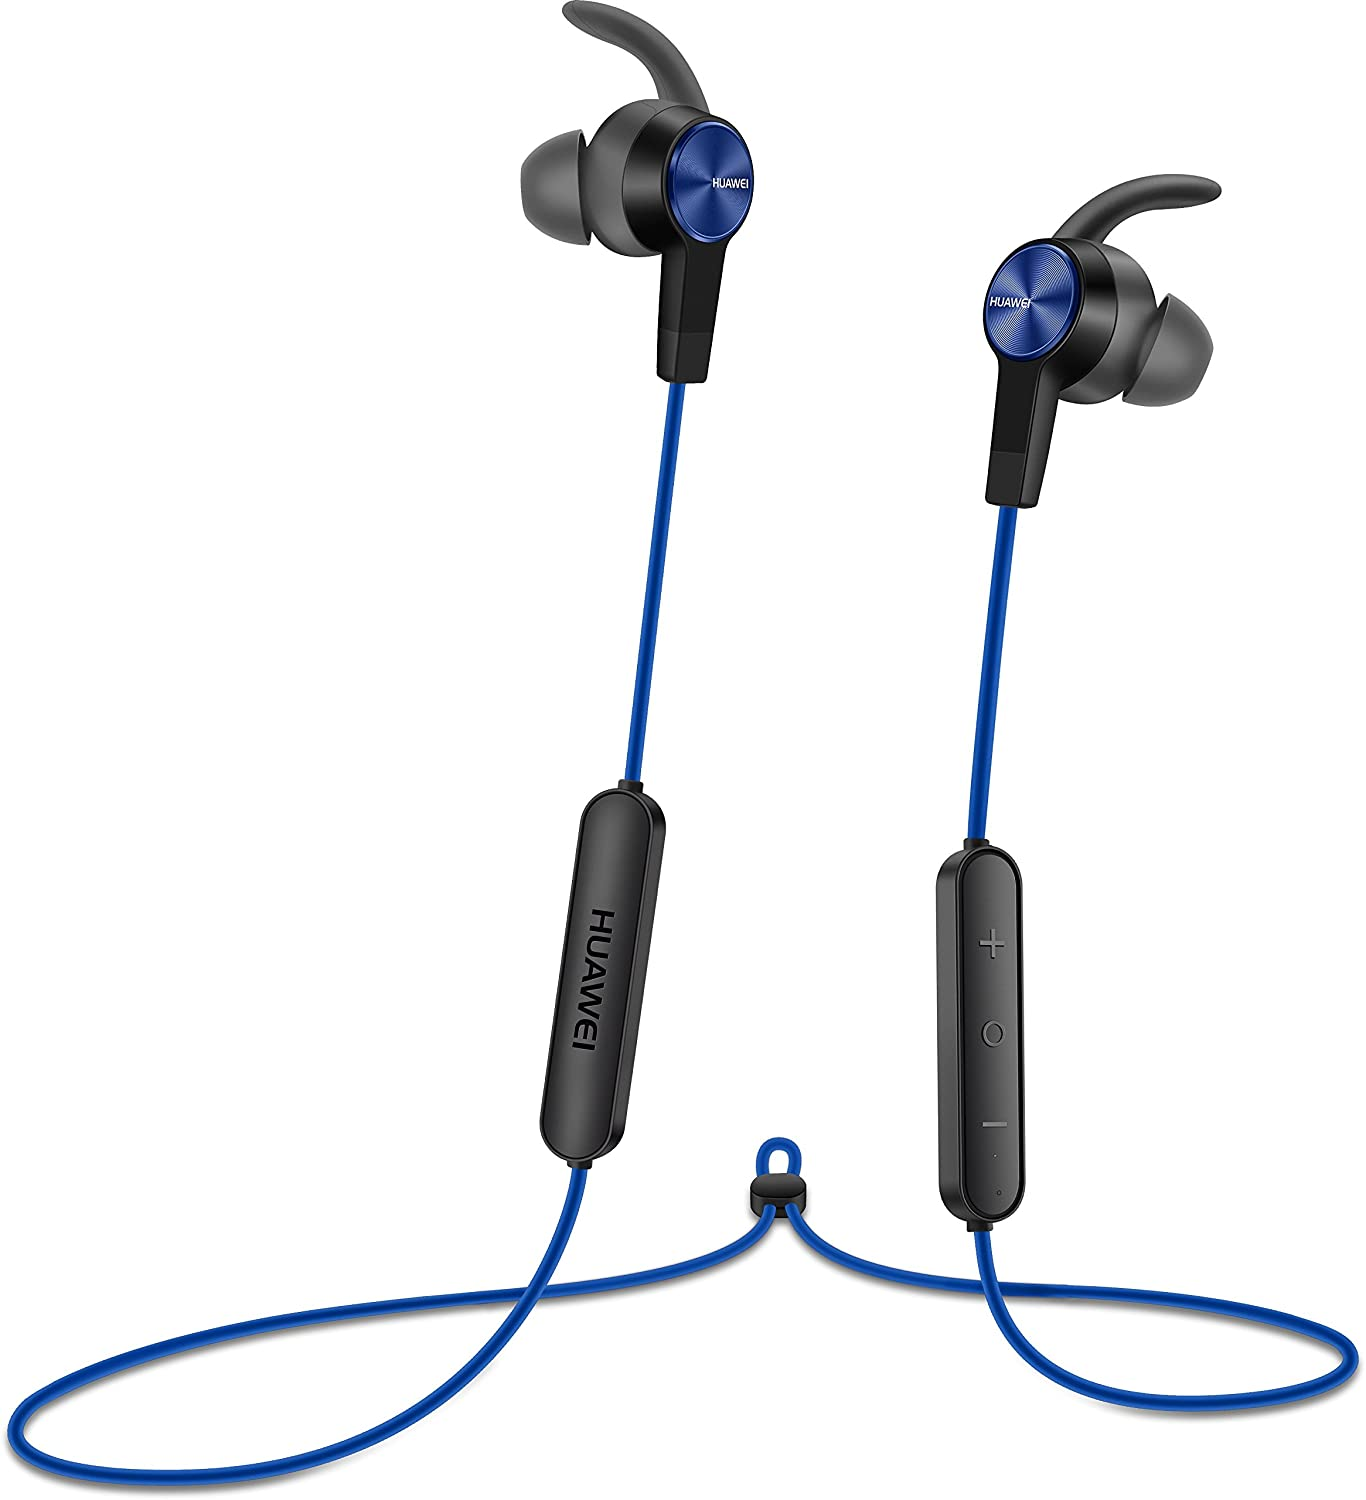 Huawei Sport Bluetooth Headphone Lite AM61 Blue - Auriculares